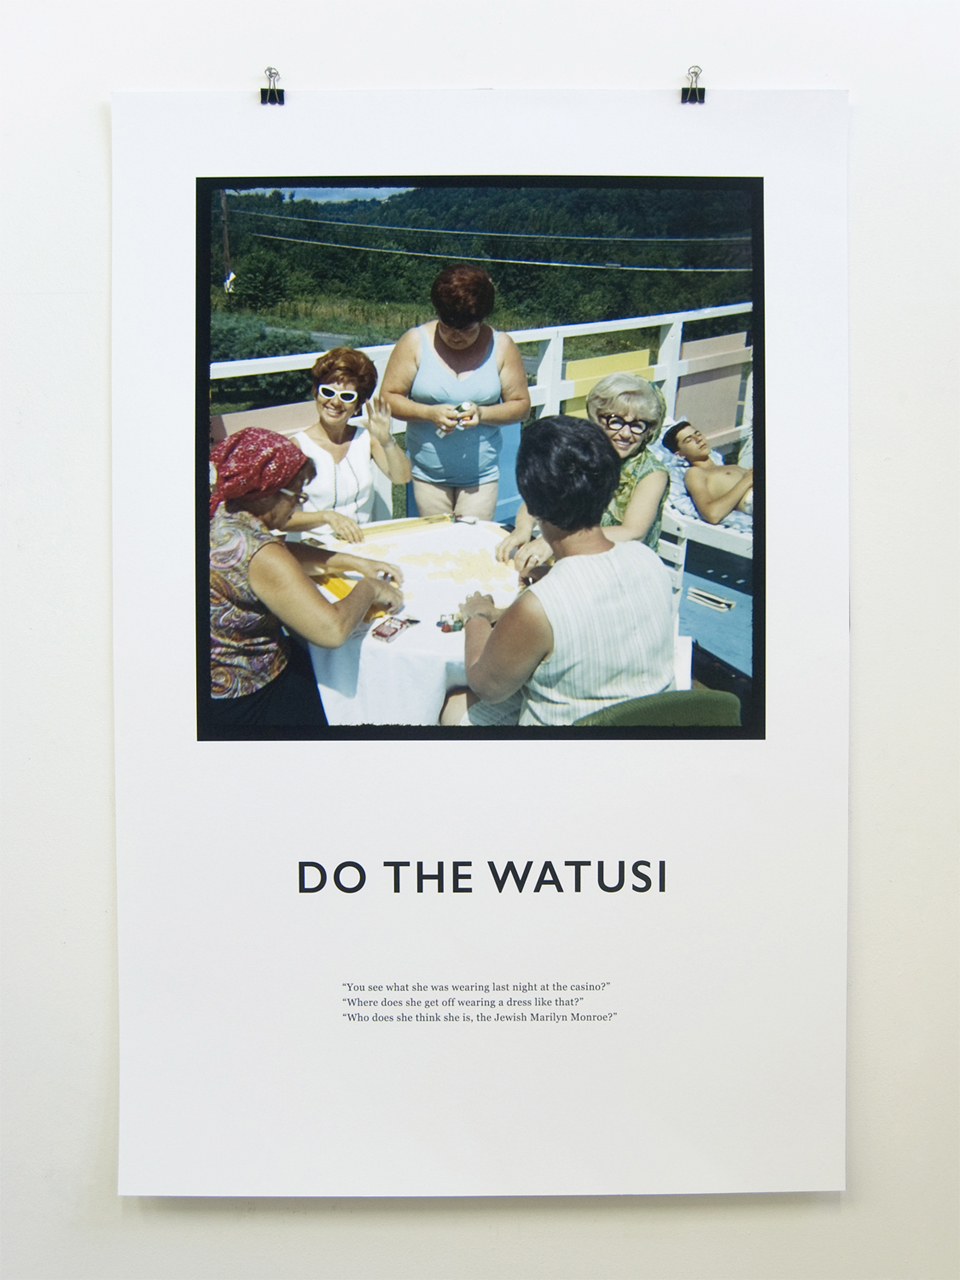 Do the Watusi From the series Dirty Dancing, 2017 Archival fine art print on Hahnemuhle paper, suite of 16 prints at 36 x 24 in each